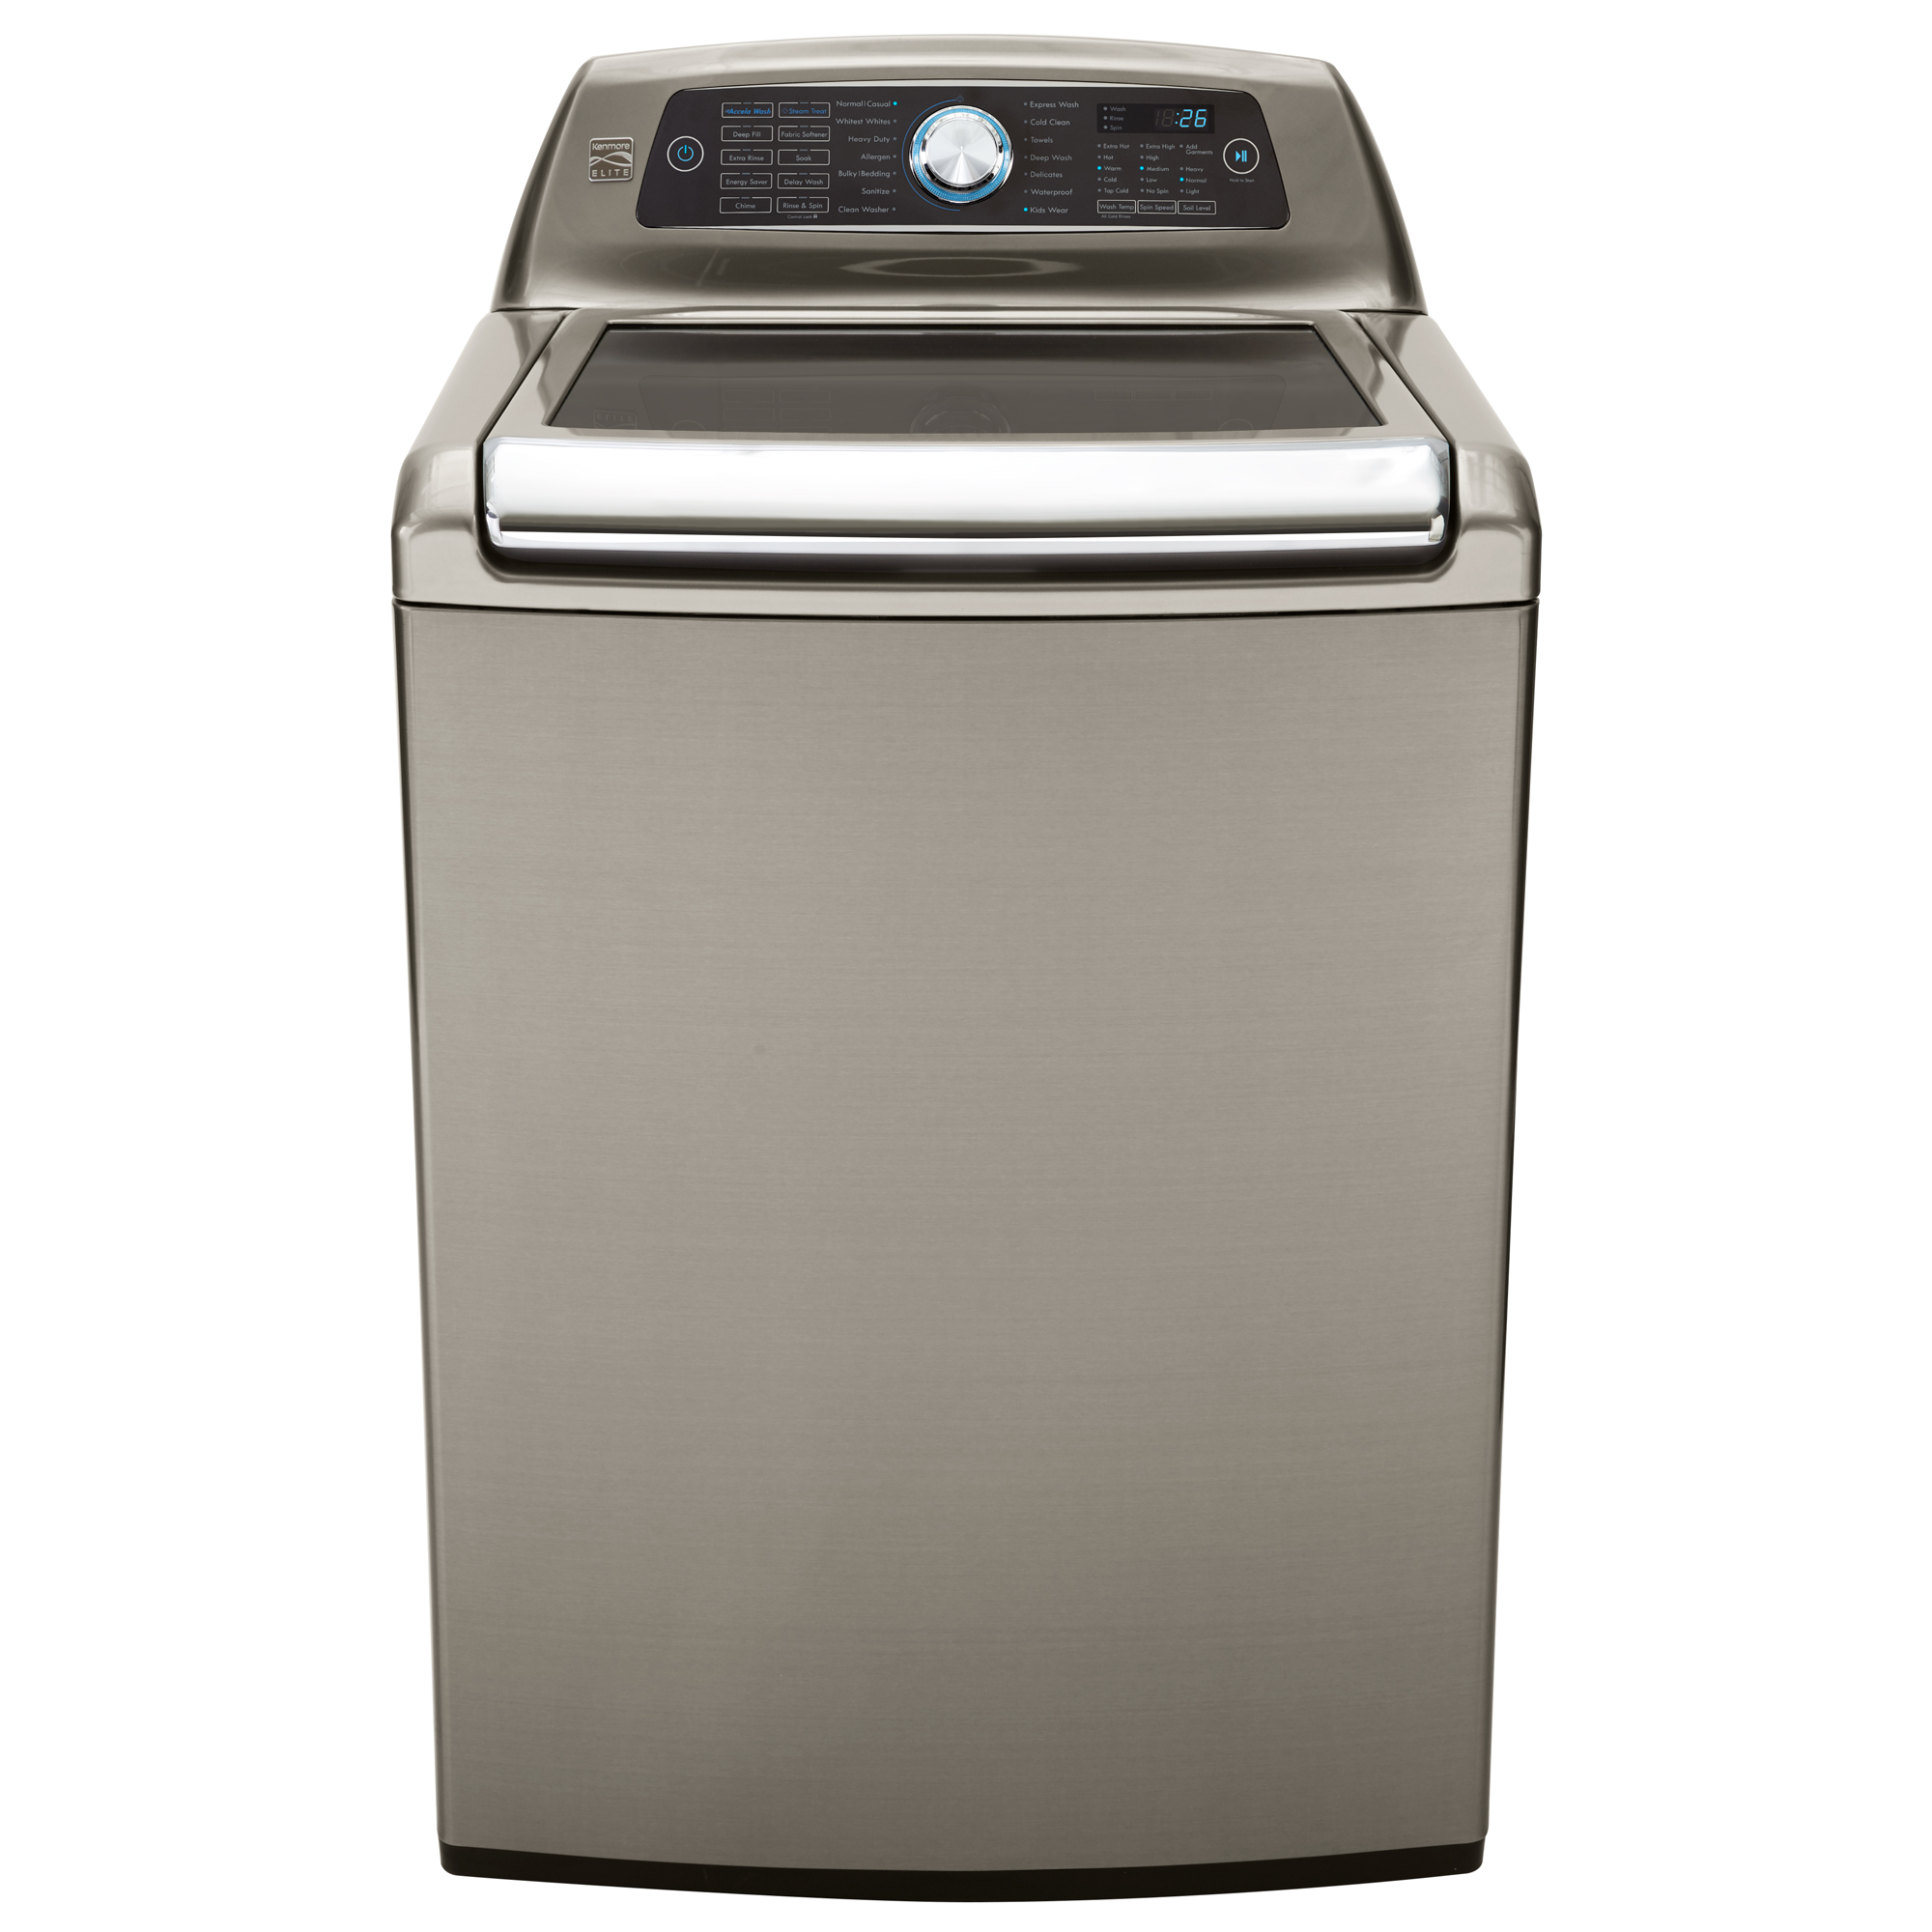 medium resolution of kenmore elite 31553 5 2 cu ft top load washer w accela wash gas dryer i d be happy for any sears gas dryer diagram just to